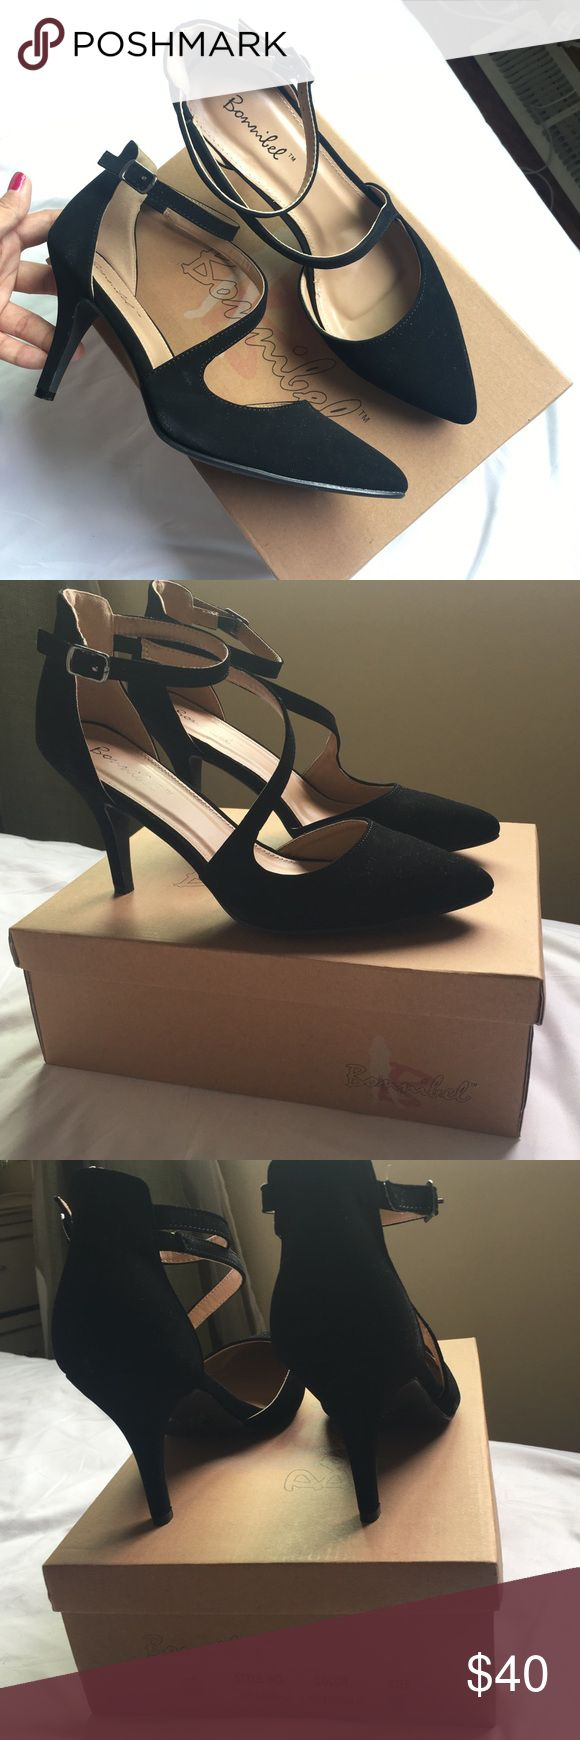 NWT BLACK SEXY HEEL Women size 8. From tillys. Brand is bonnilel. With original box. Very comfy heel. Stylish. Chic and fashion first hand. New with original condition. Never worn. Not Steve Madden, just for exposure. Steve Madden Shoes Heels